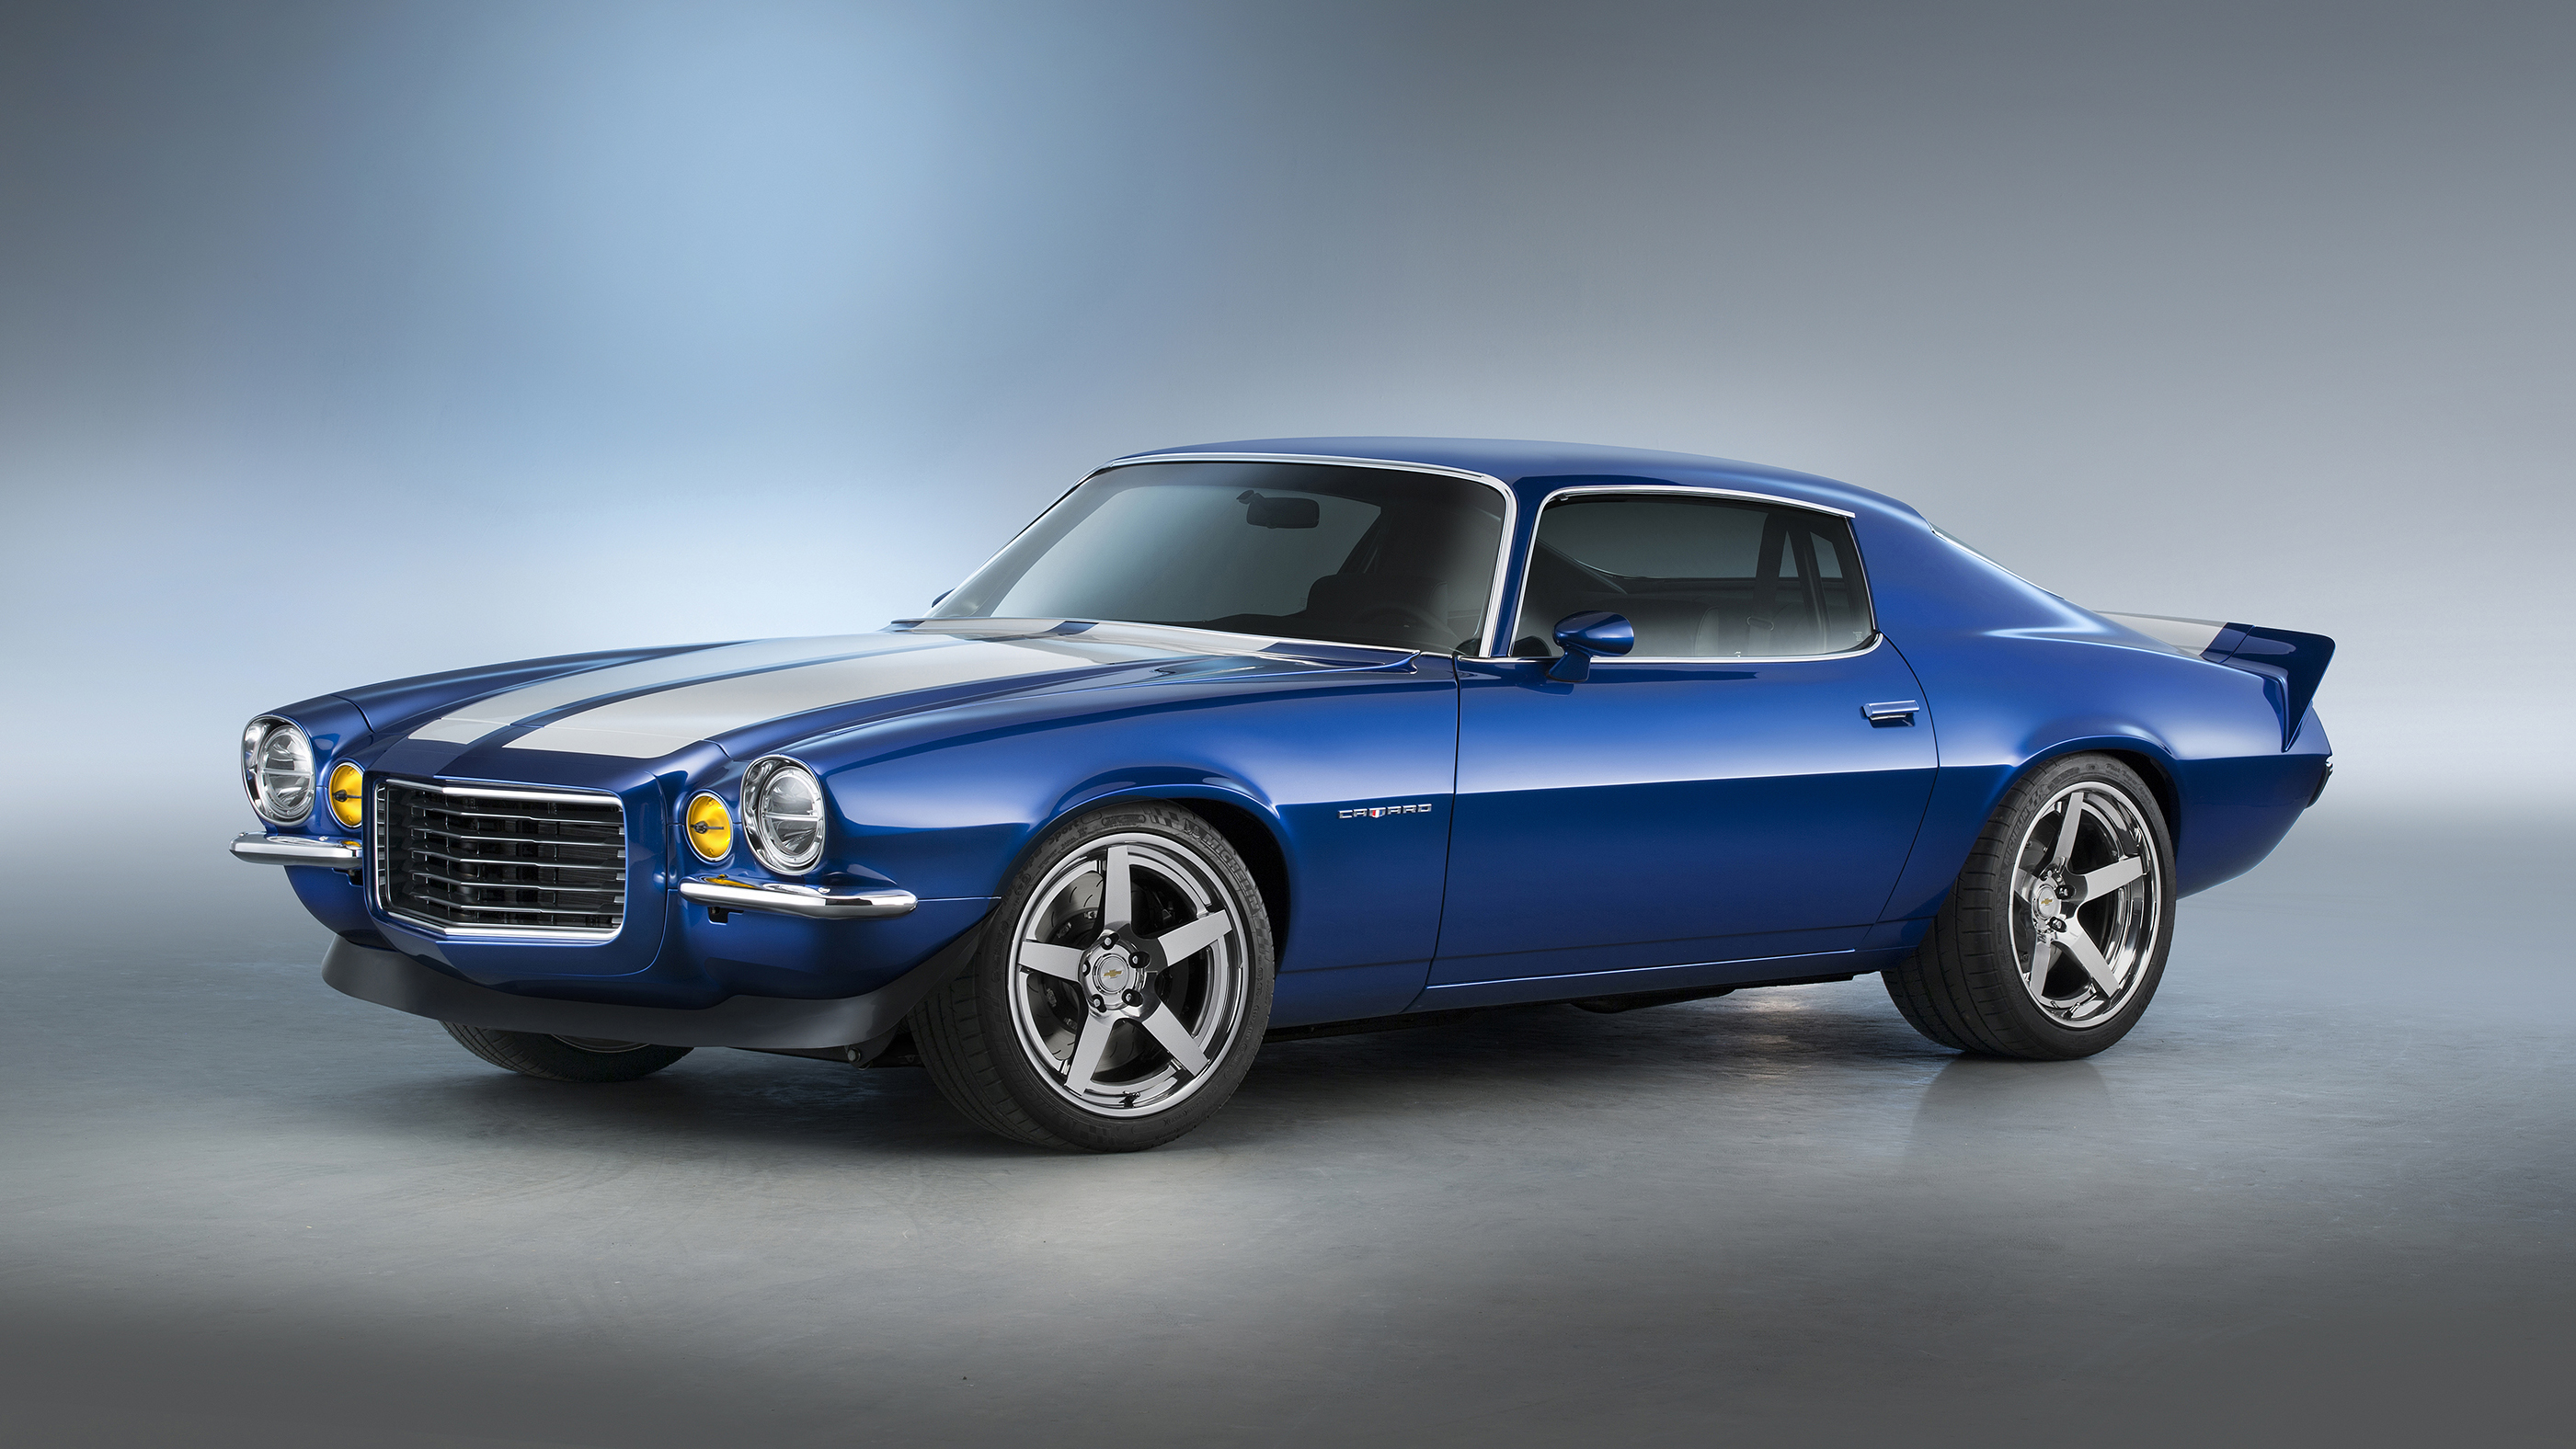 This Old Camaro Has A New 650bhp Corvette Engine Top Gear